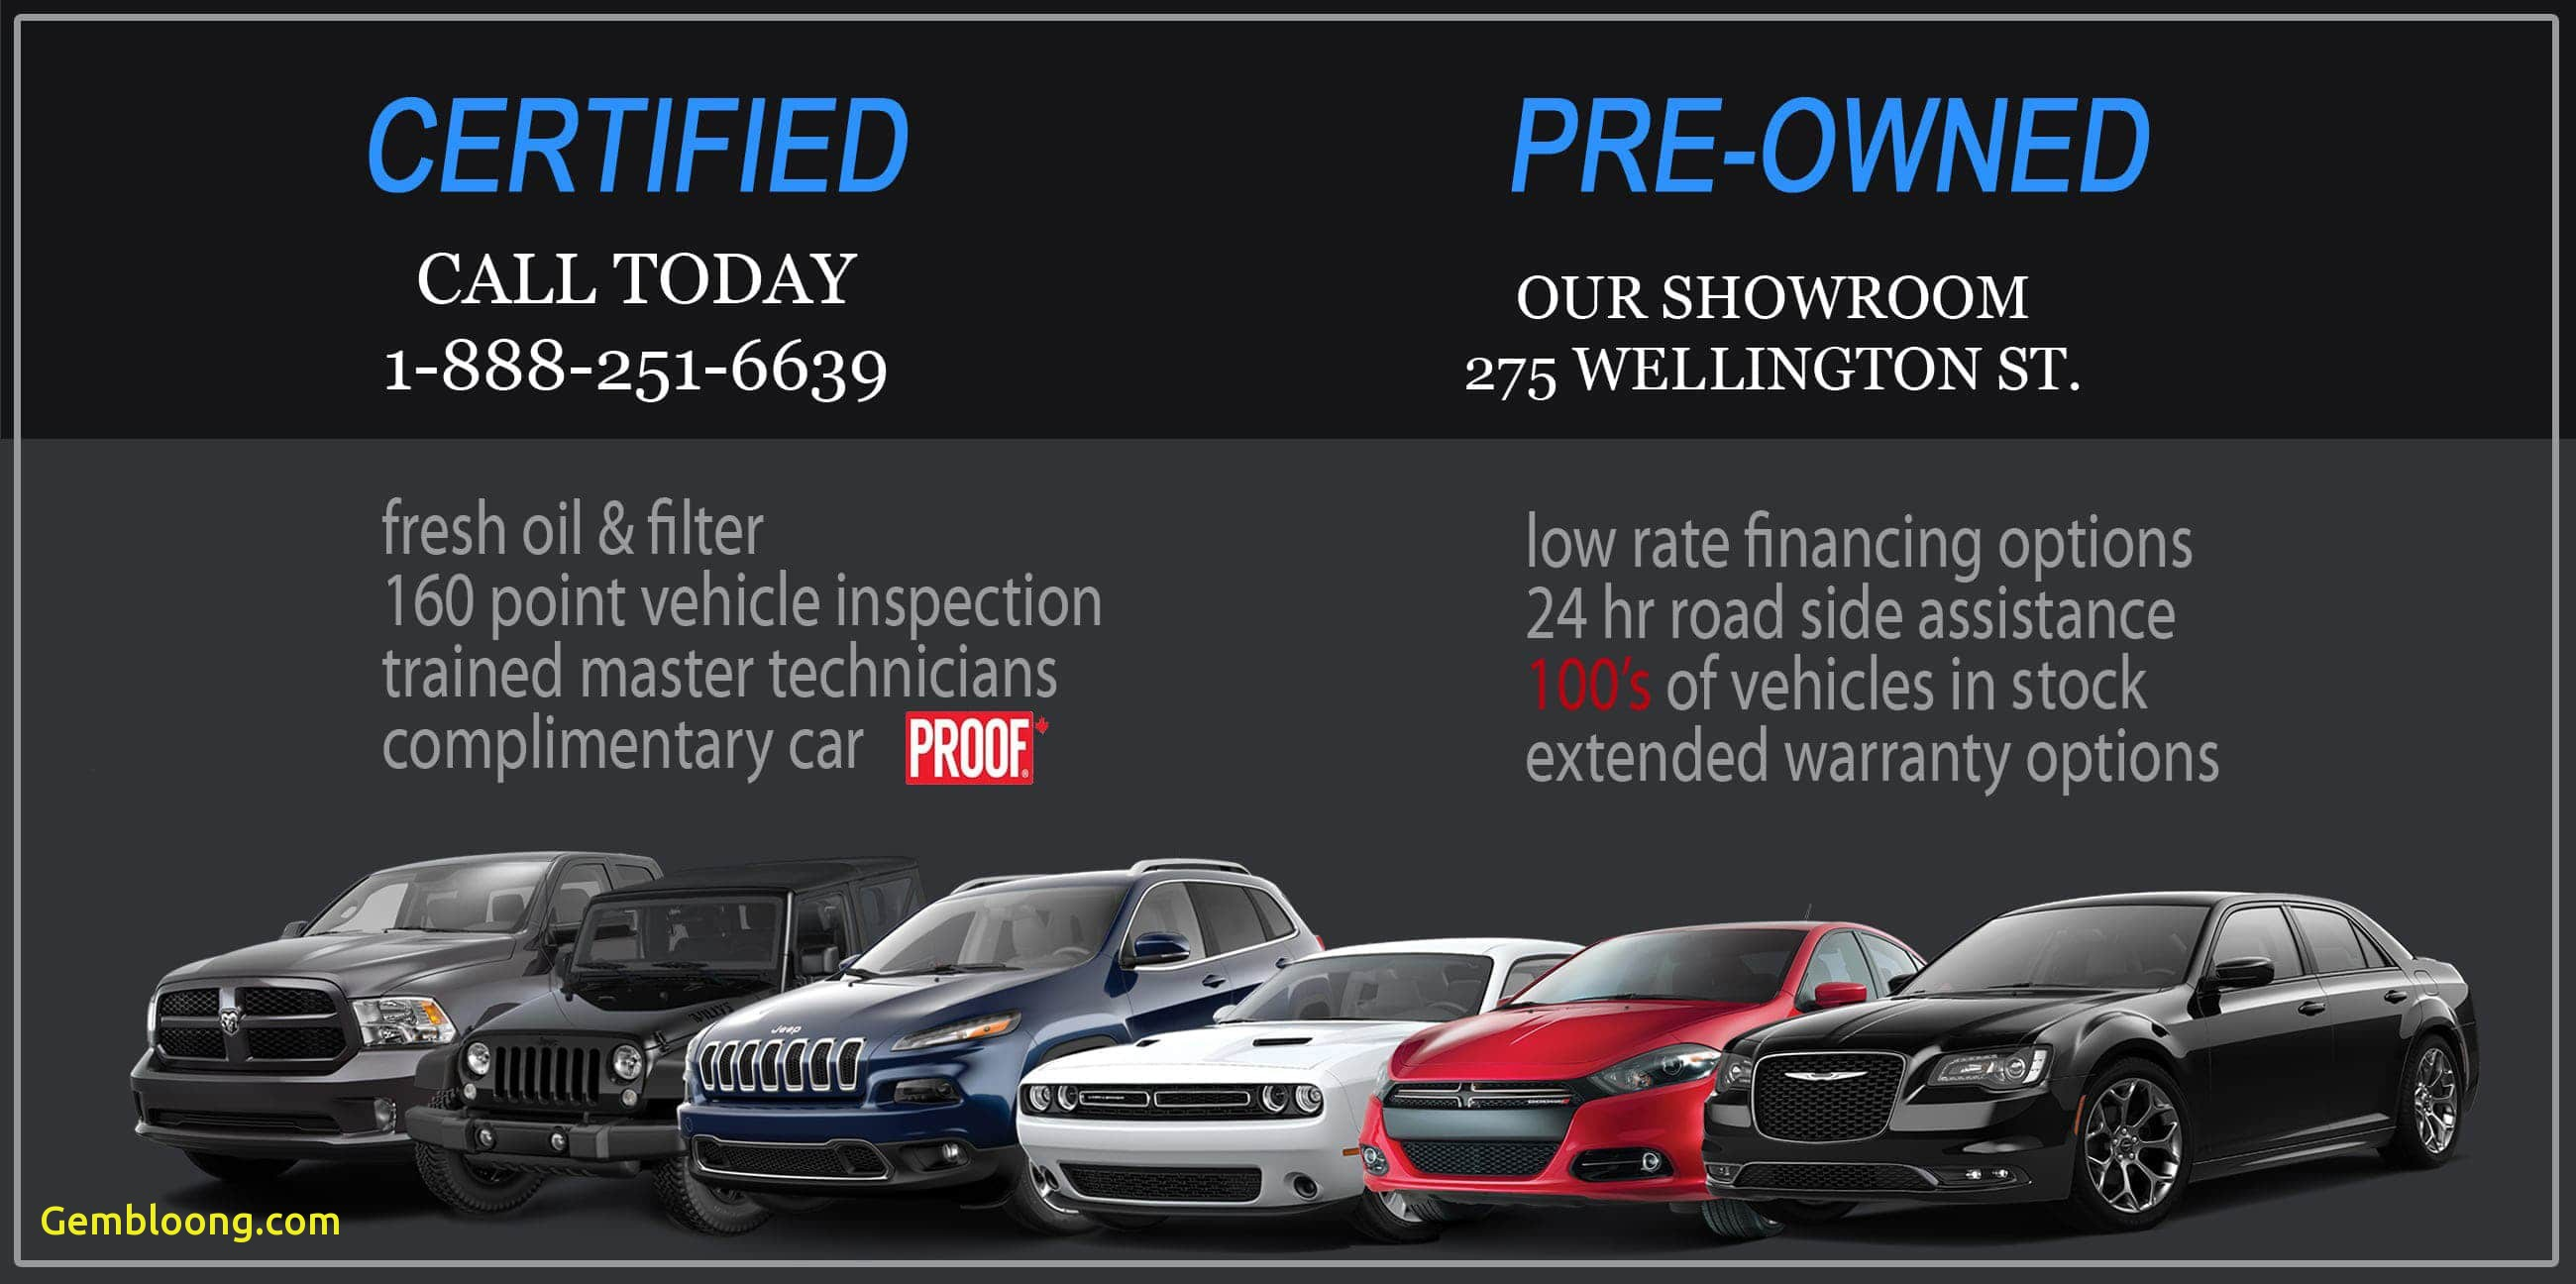 50 auto used used inventory indexm used trucks sedans vans suvs elgin cdjr from cars for sale near me no license required